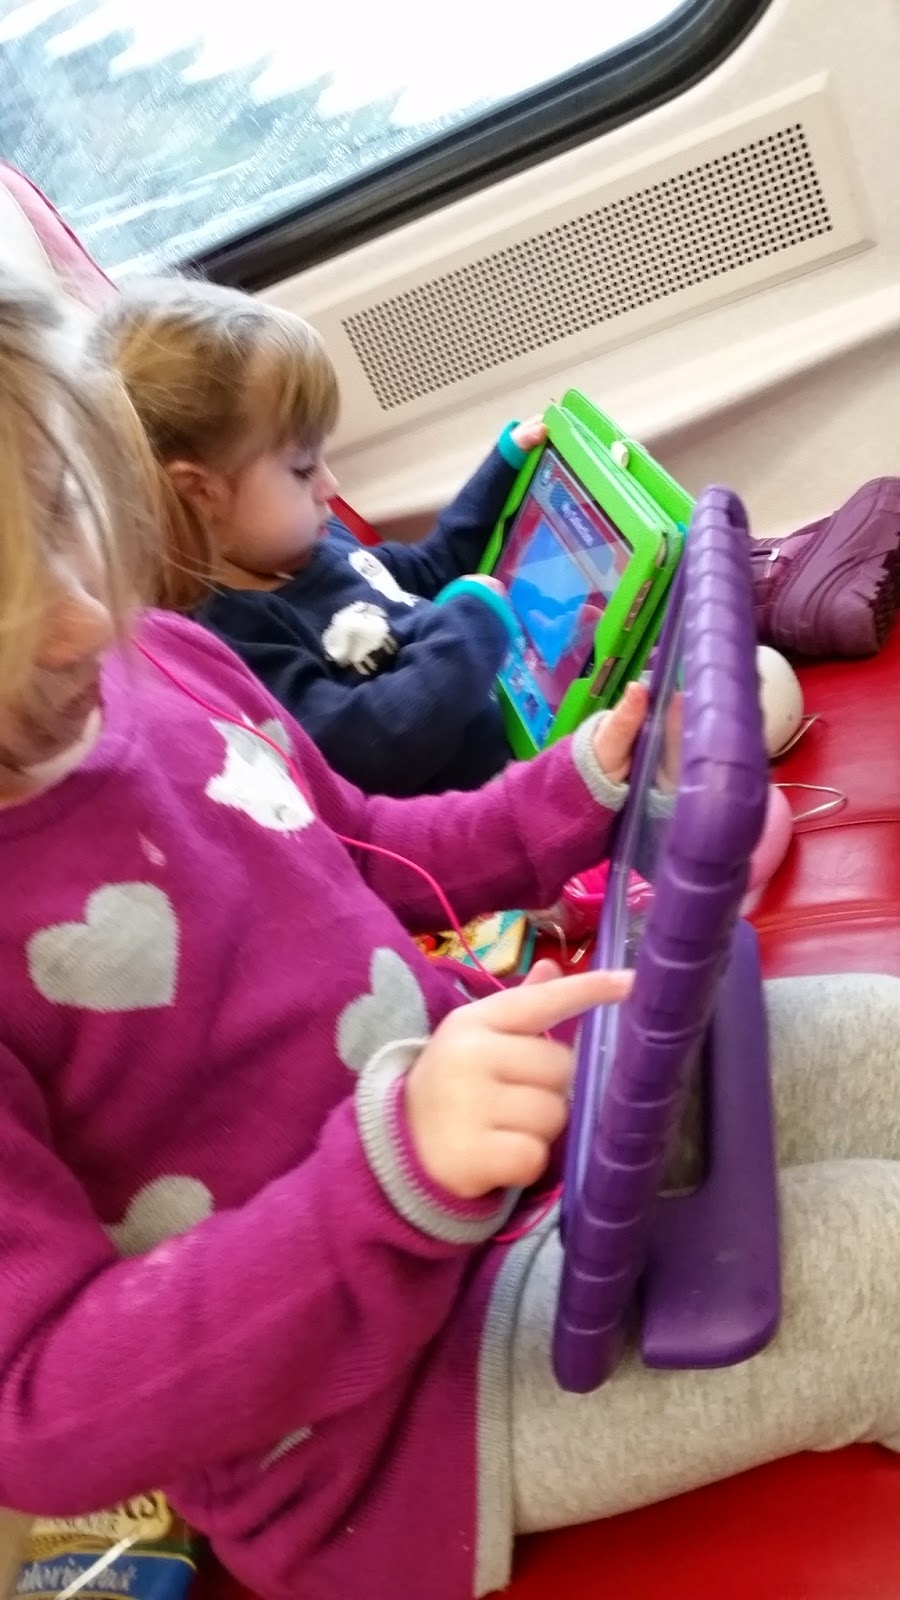 4 year old and 2 year old on train with ipads